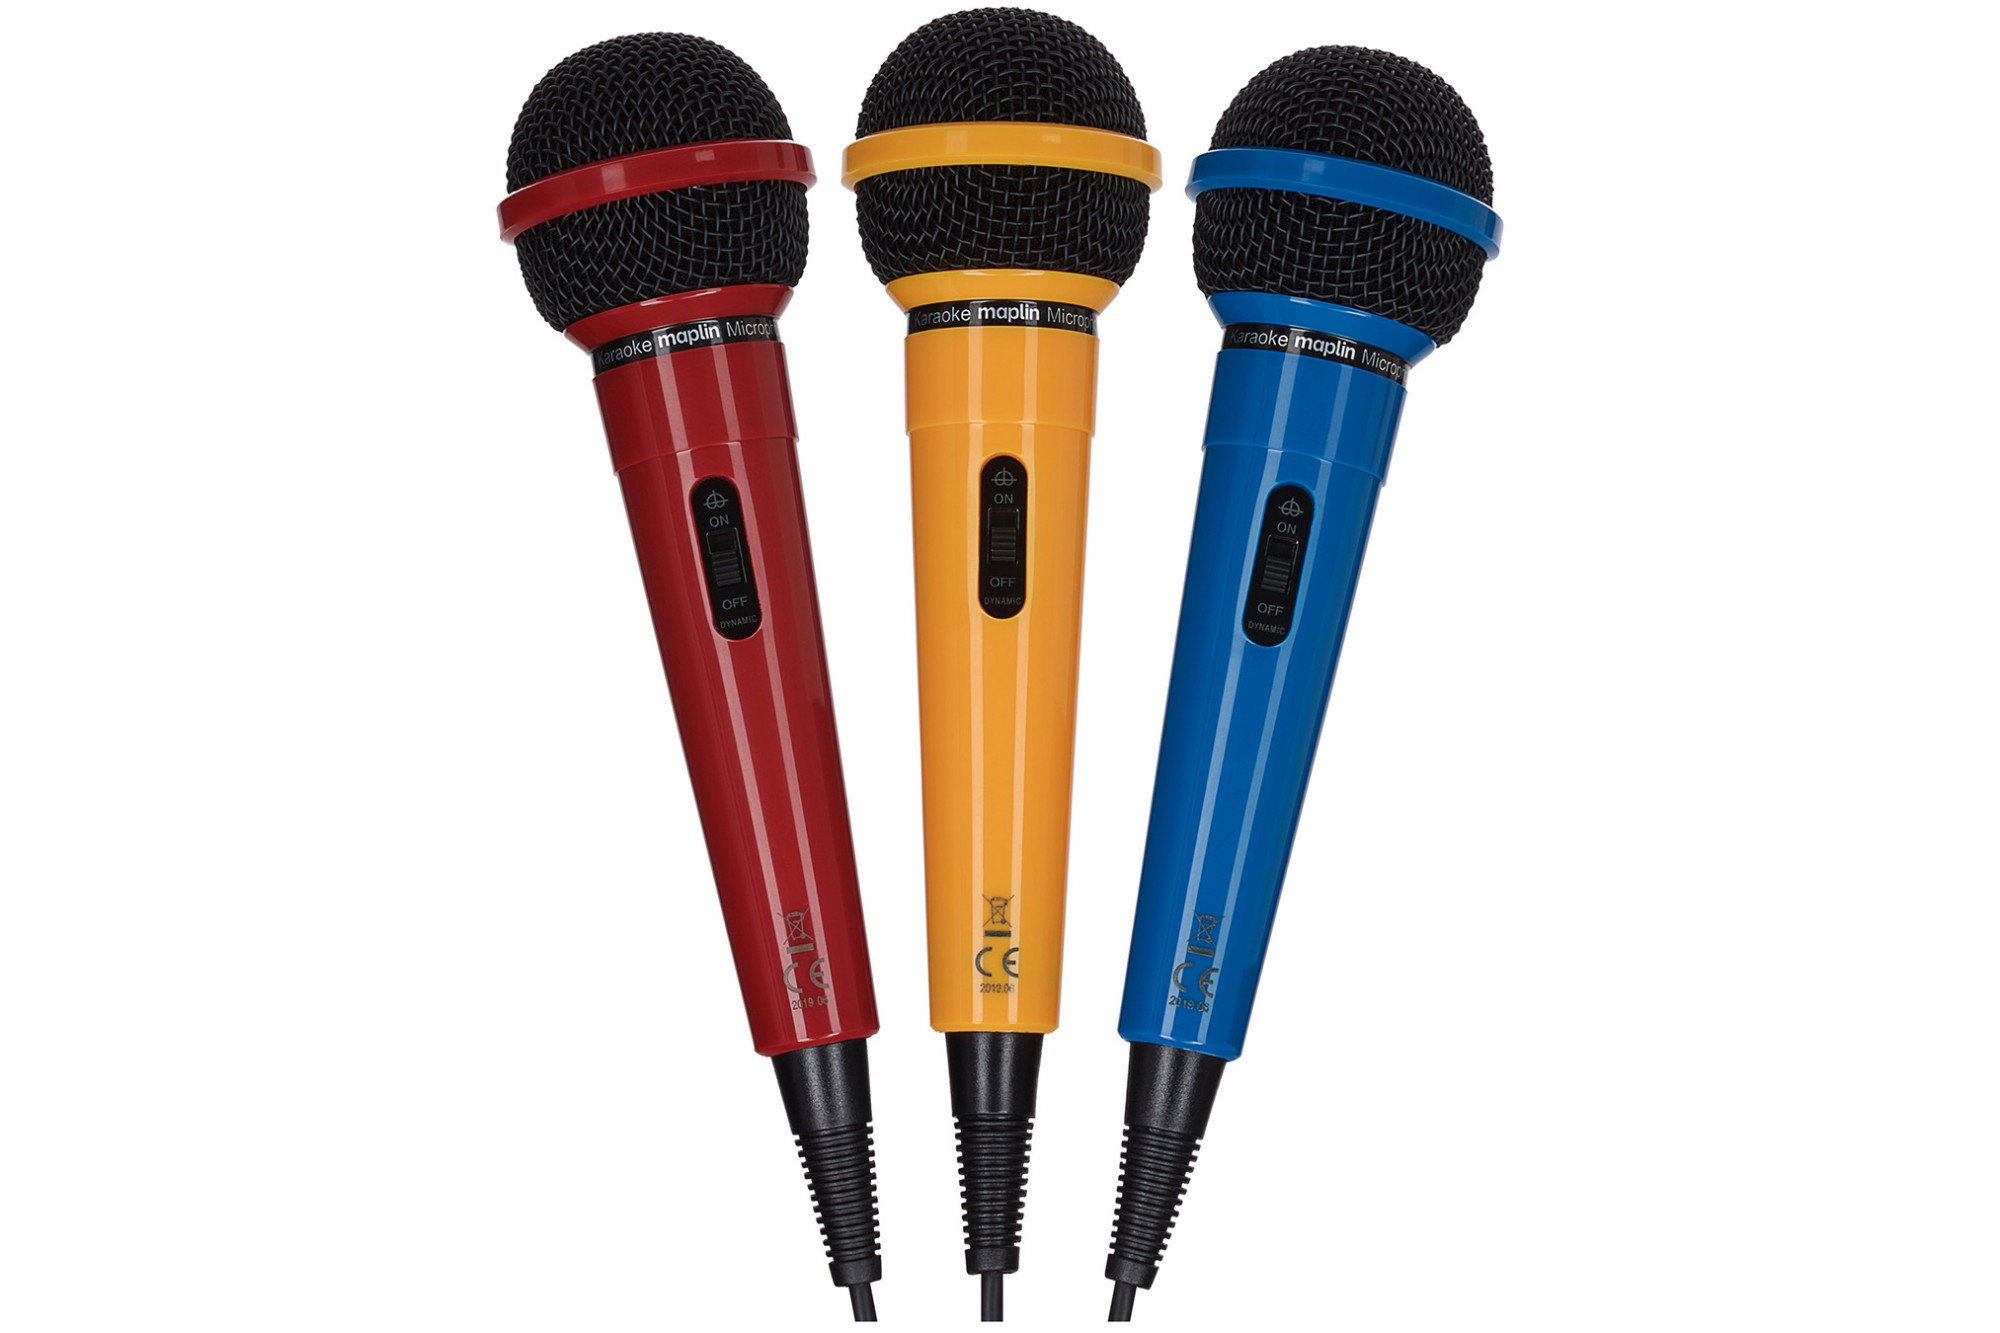 Karaoke Dynamic Directional Microphones - Red, Yellow & Blue 3 Pack